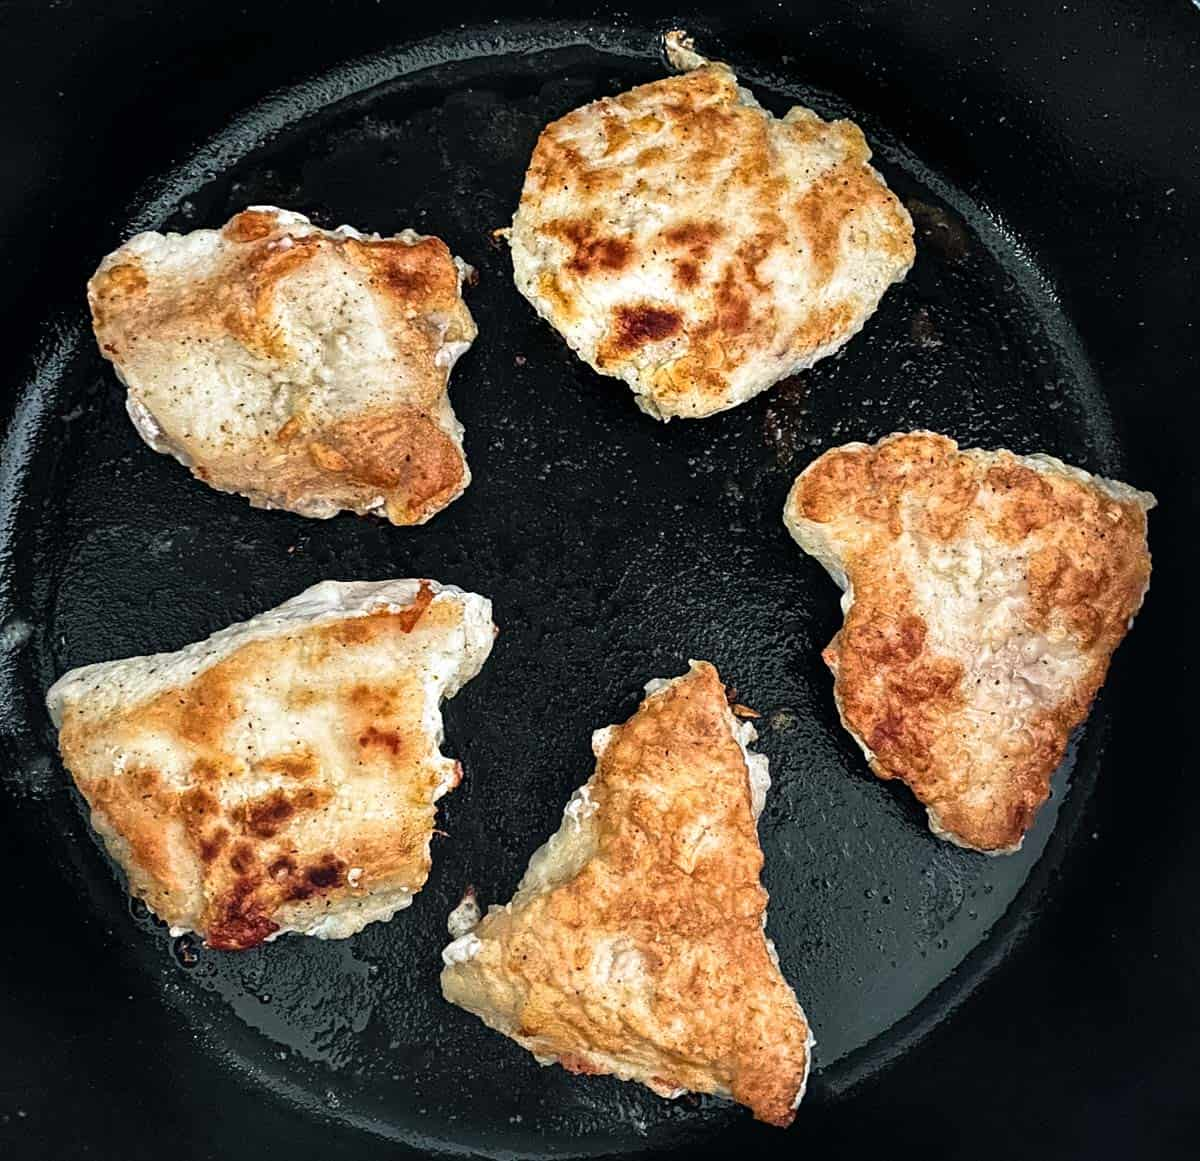 cooked chicken in skillet